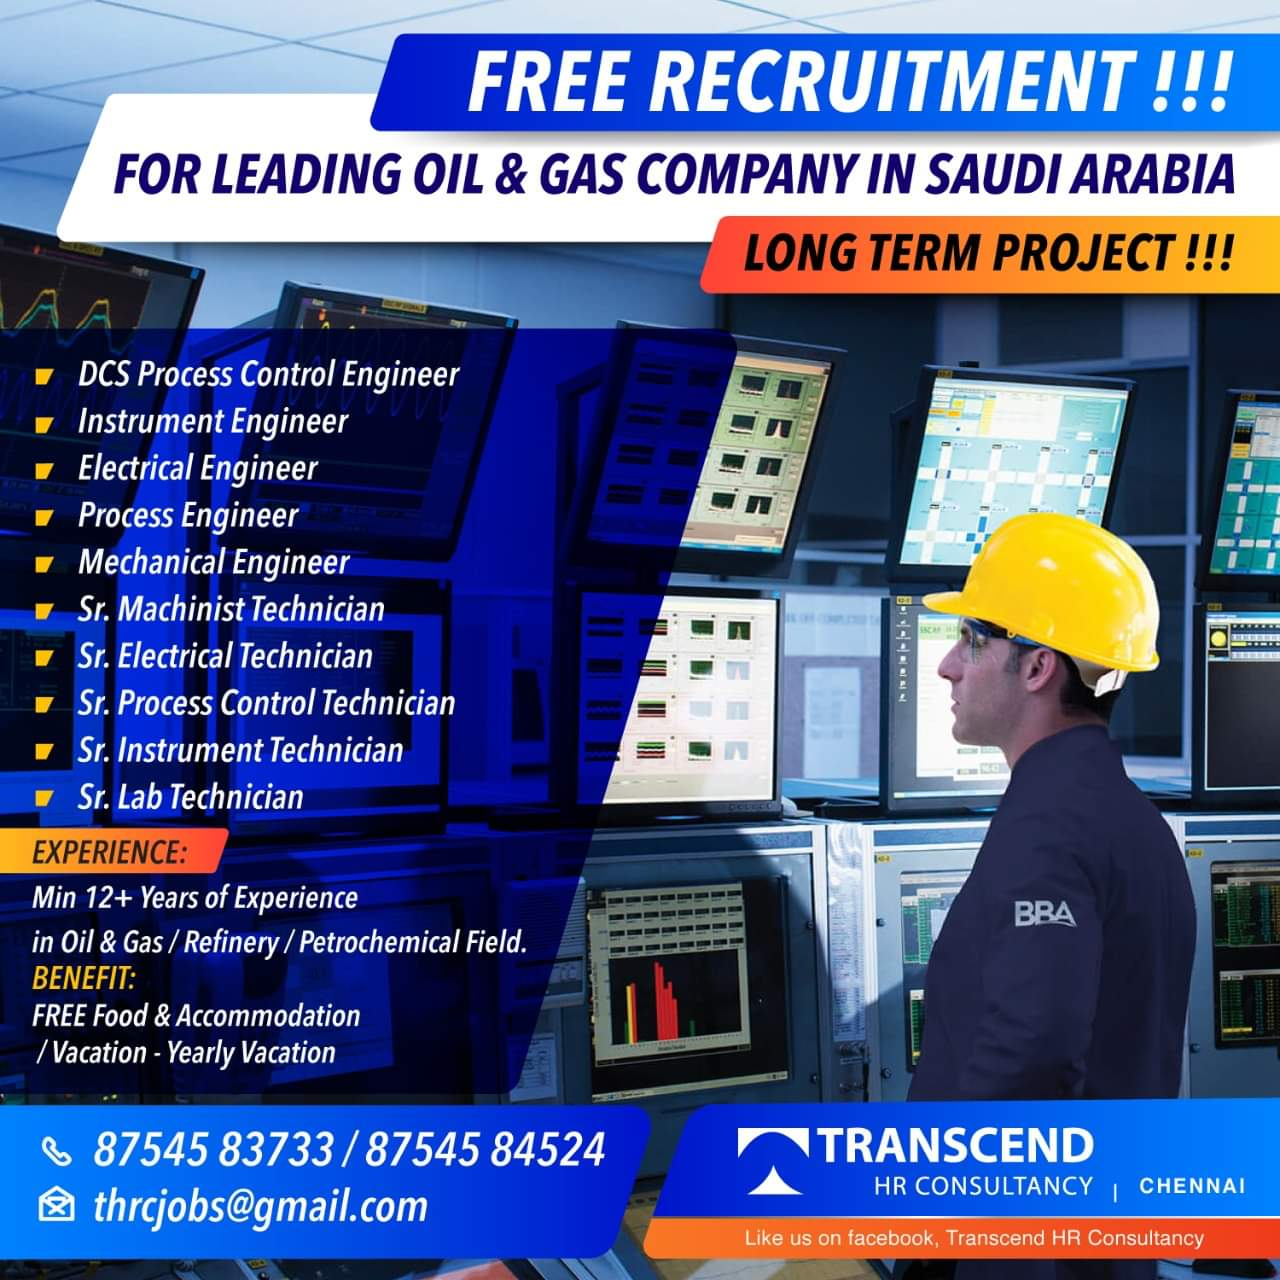 LEADING OIL AND GAS COMPANY IN SAUDI ARABIA A LONG TERM PROJECT